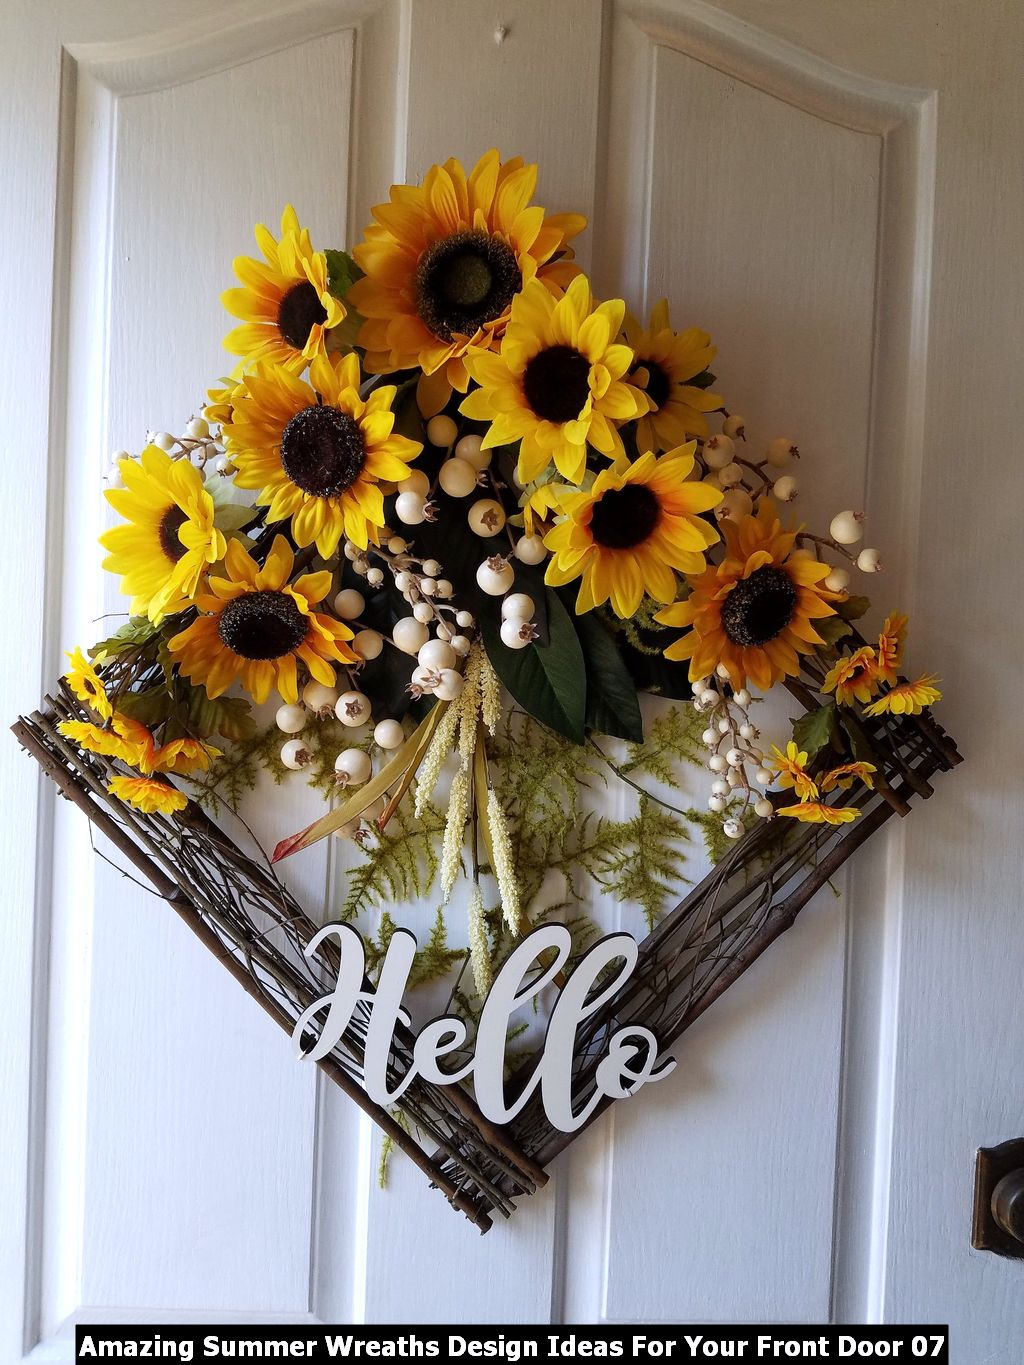 Amazing Summer Wreaths Design Ideas For Your Front Door 07